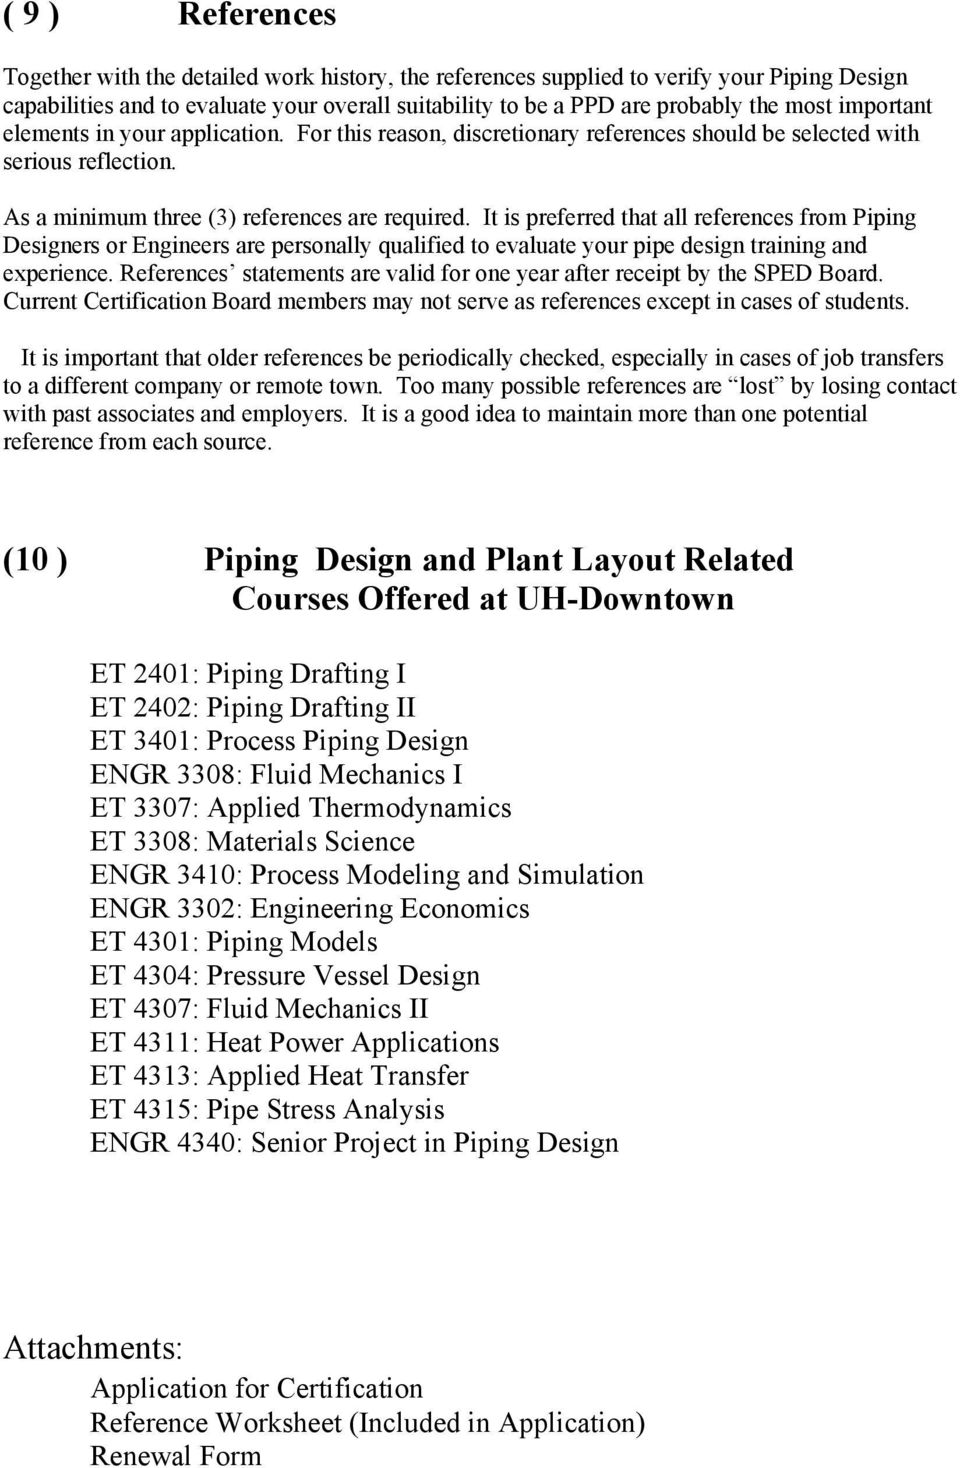 It is preferred that all references from Piping Designers or Engineers are personally qualified to evaluate your pipe design training and experience.